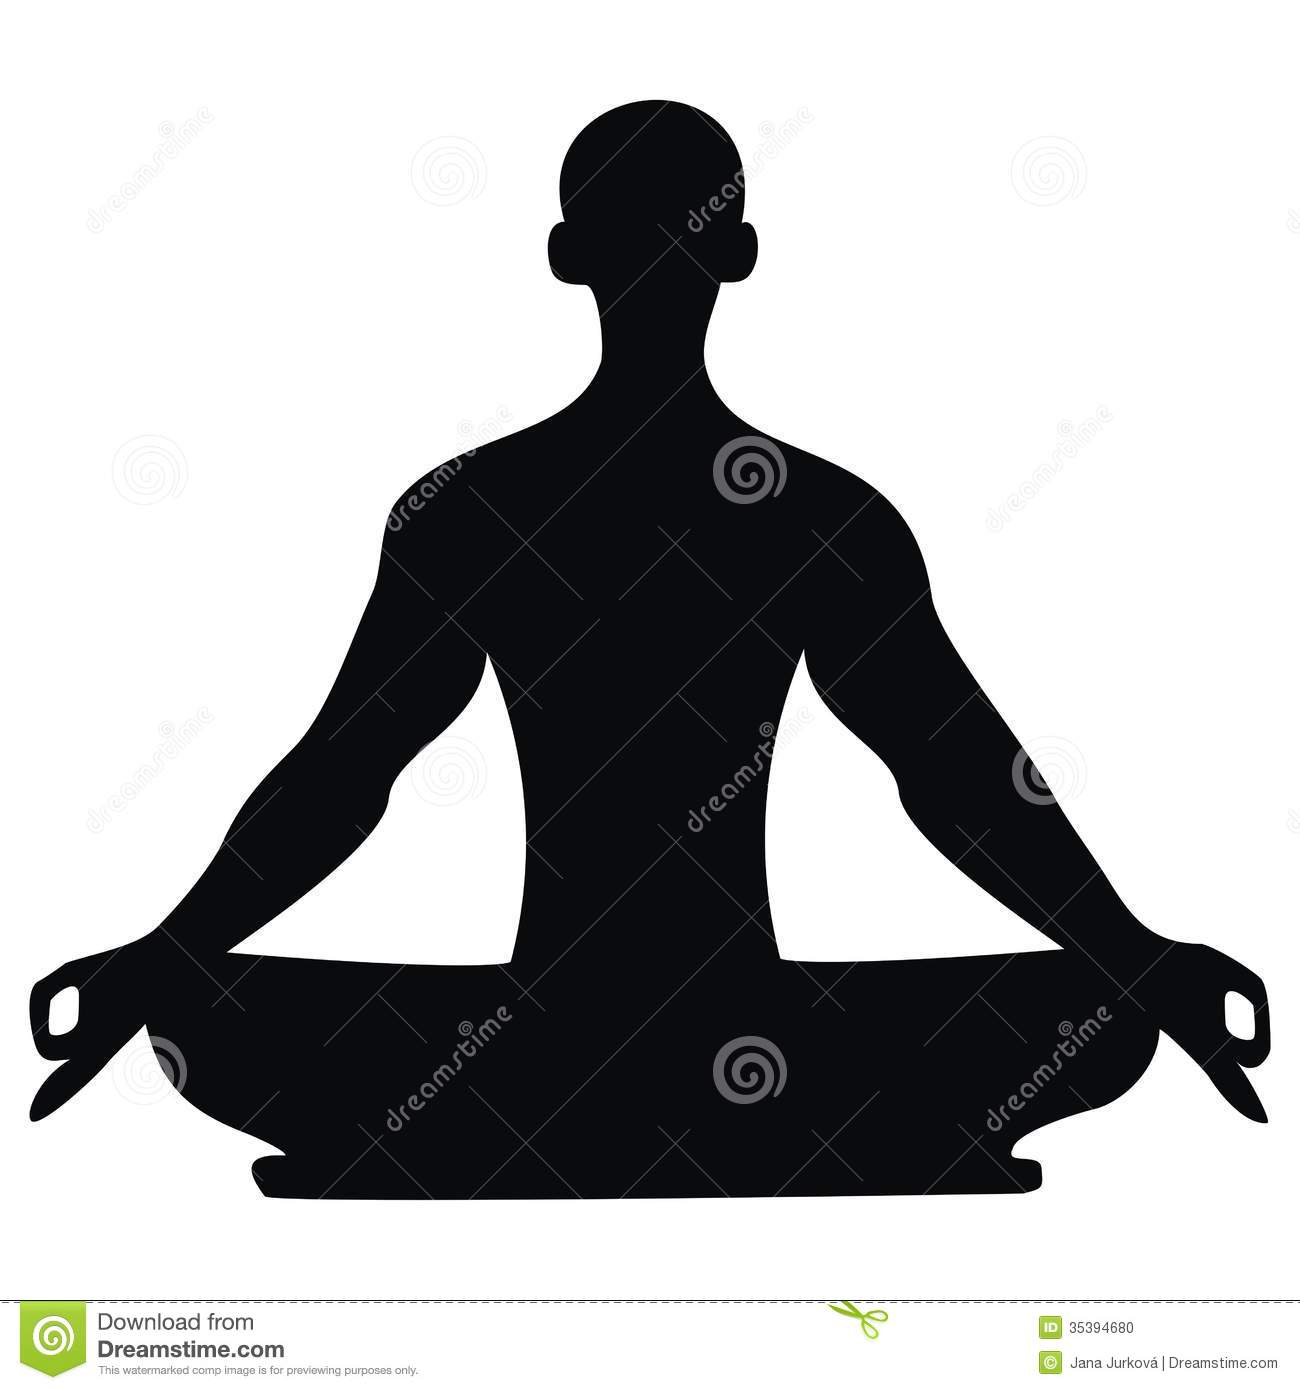 Yoga - Silhouette of a man during exercise.